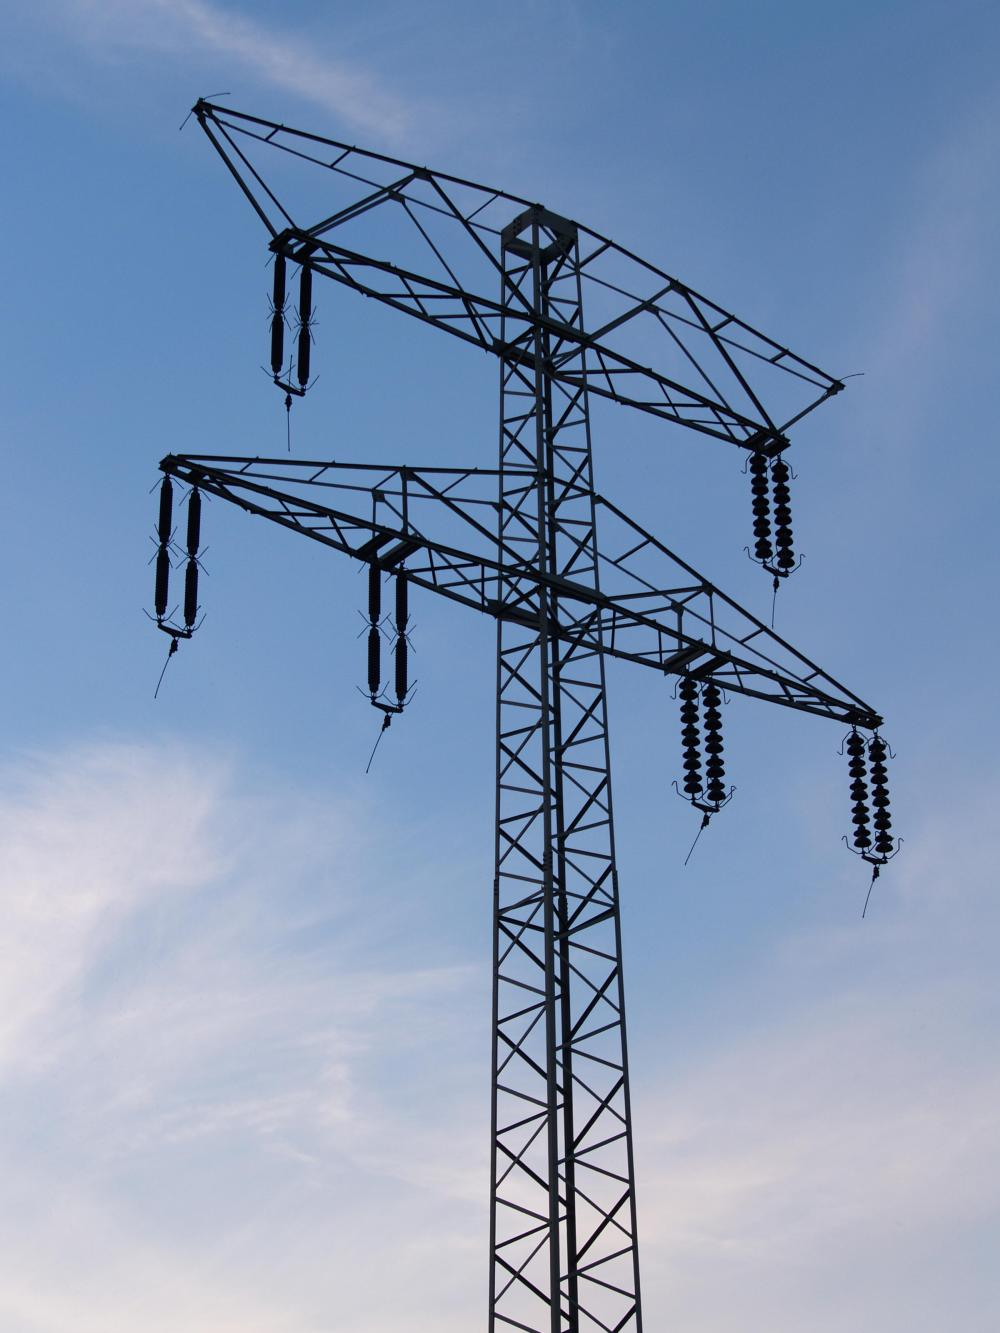 medium resolution of parts of kanawha and roane counties will see new power lines and electrical upgrades under a 75 million electric grid expansion plan by energy companies